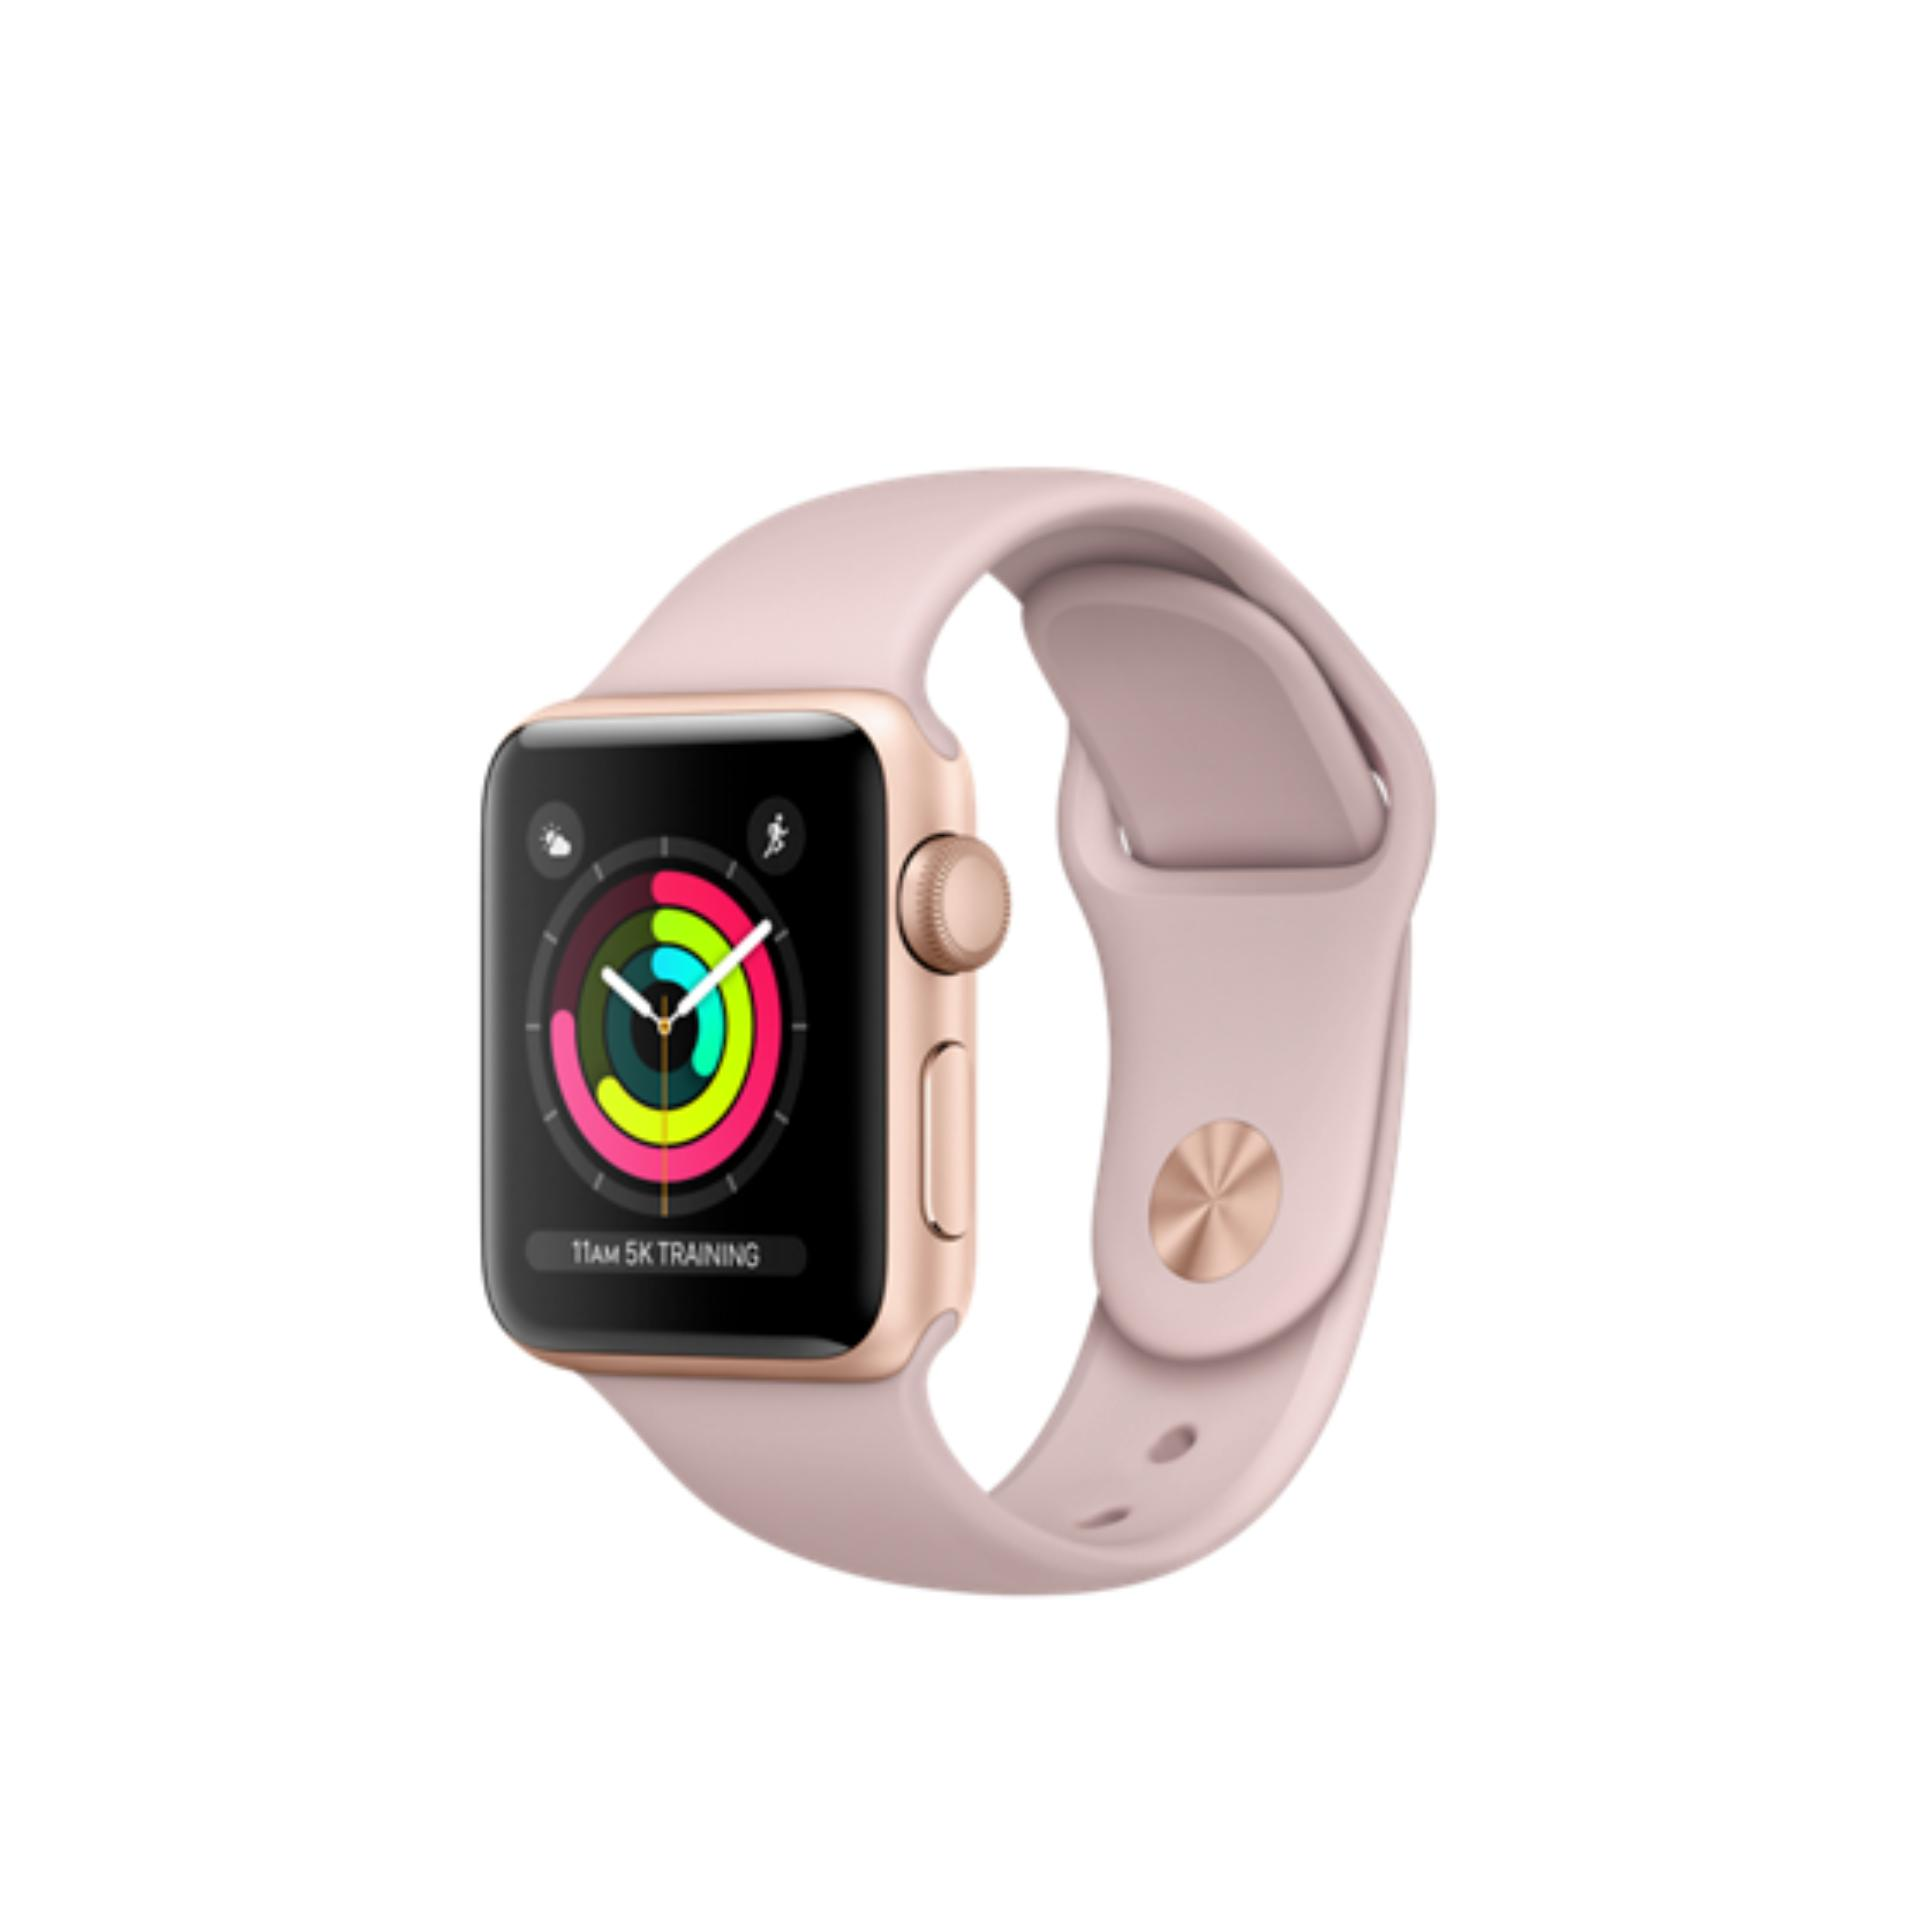 Jual Apple Watch Series 3 Gps 38Mm Gold Alum With Pink Sand Sport Band Murah